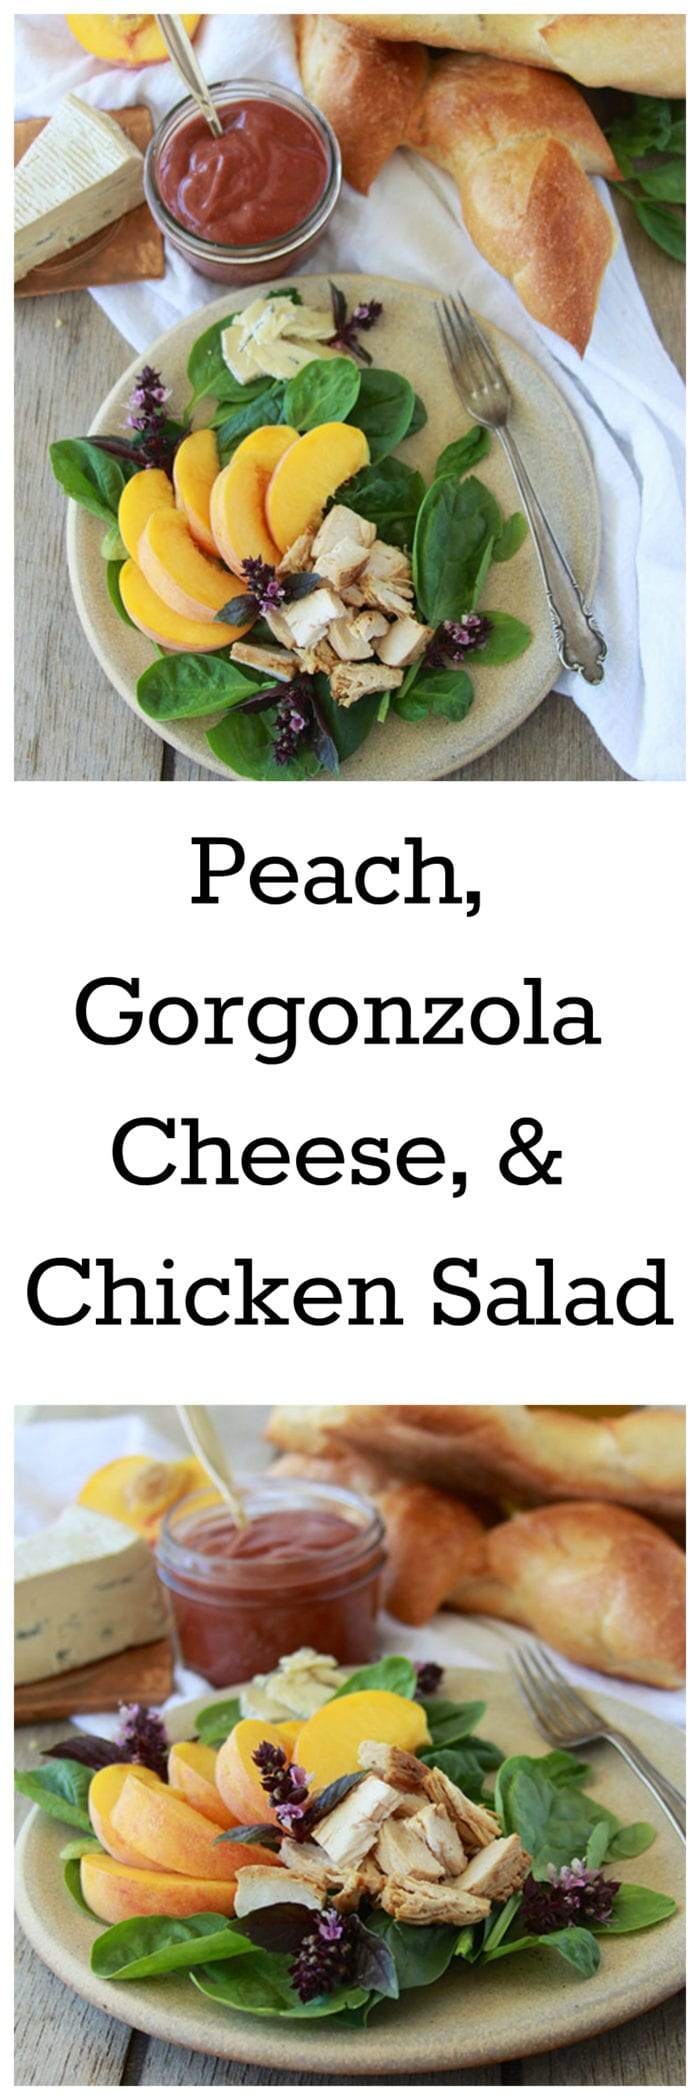 Peach, Gorgonzola Cheese, and Chicken Salad is mouth-watering and packed with delicious nutrition! www.cookingwithruthie.com